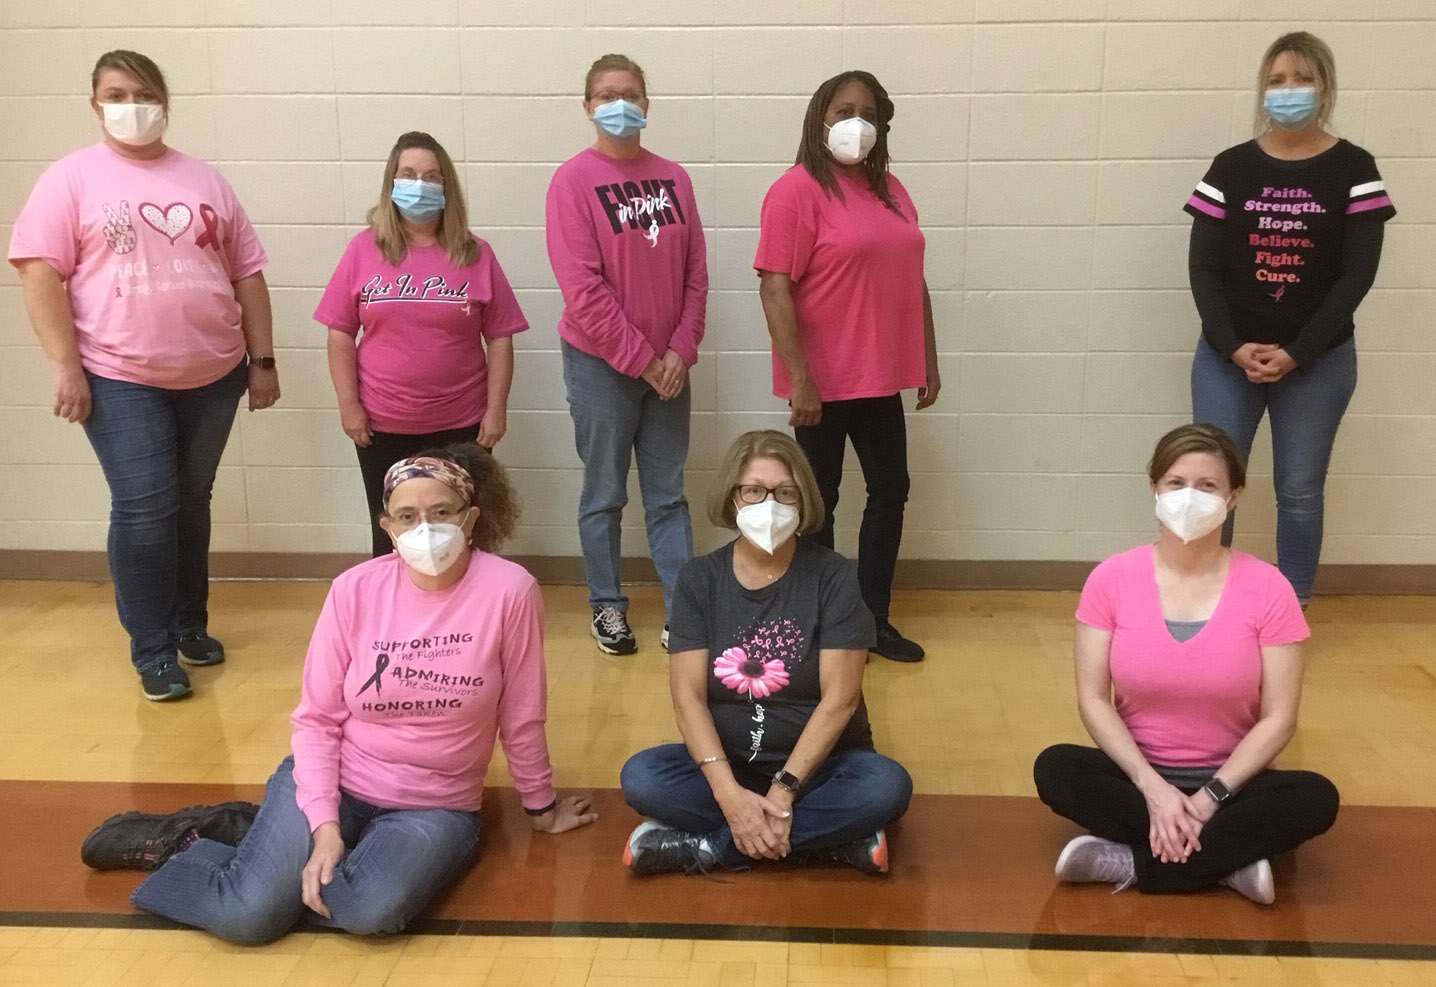 Murray County Health Dept Staff Poses for Breast Cancer Awareness